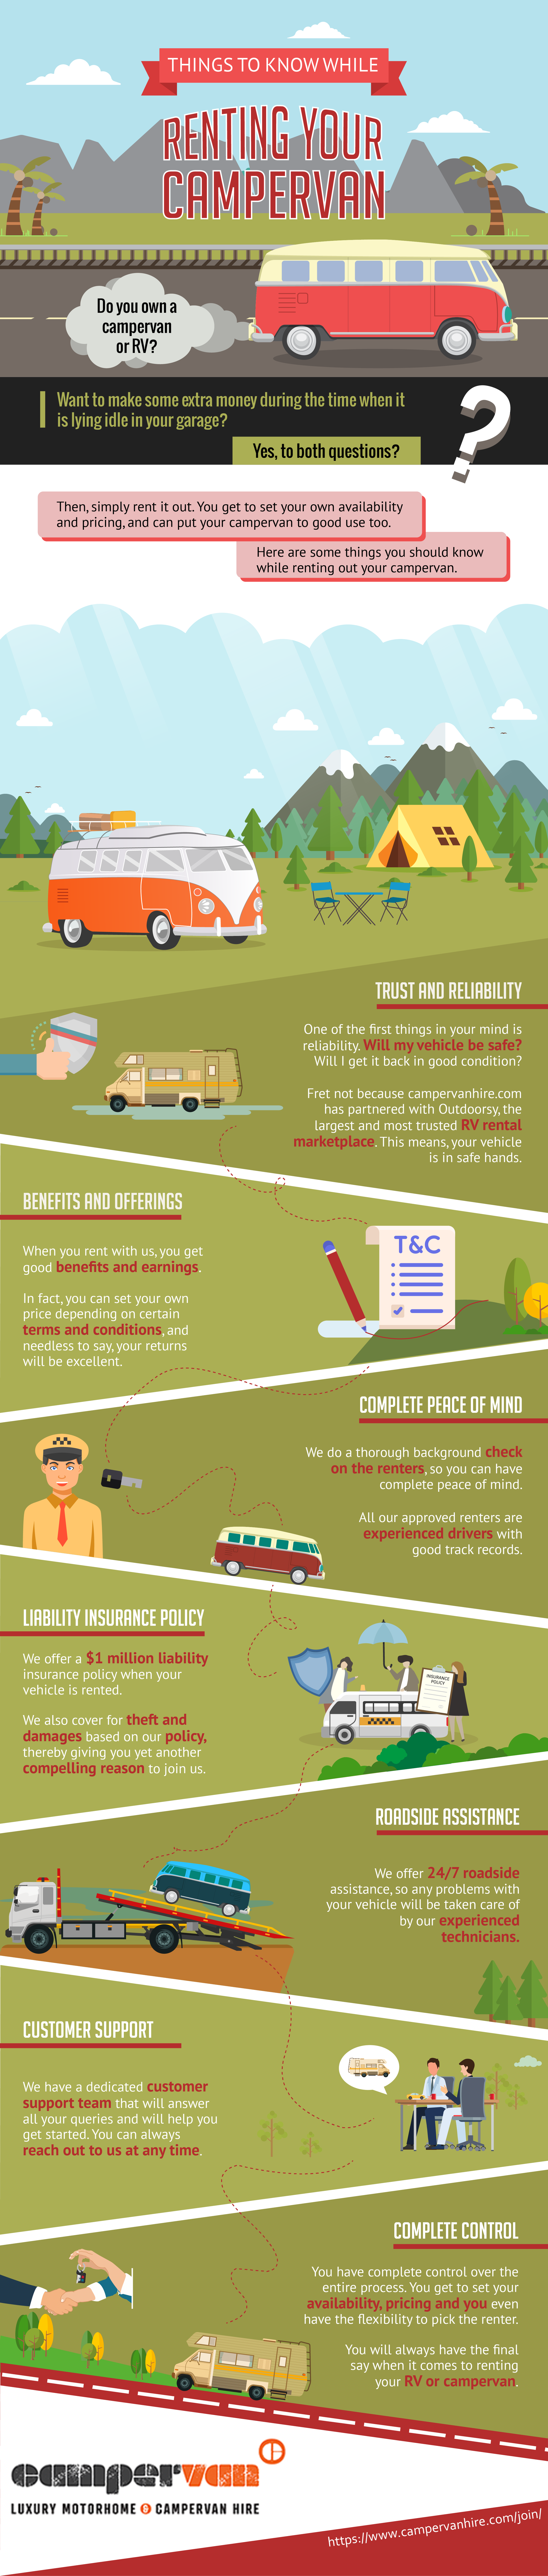 Things To Know While Renting Your Campervan